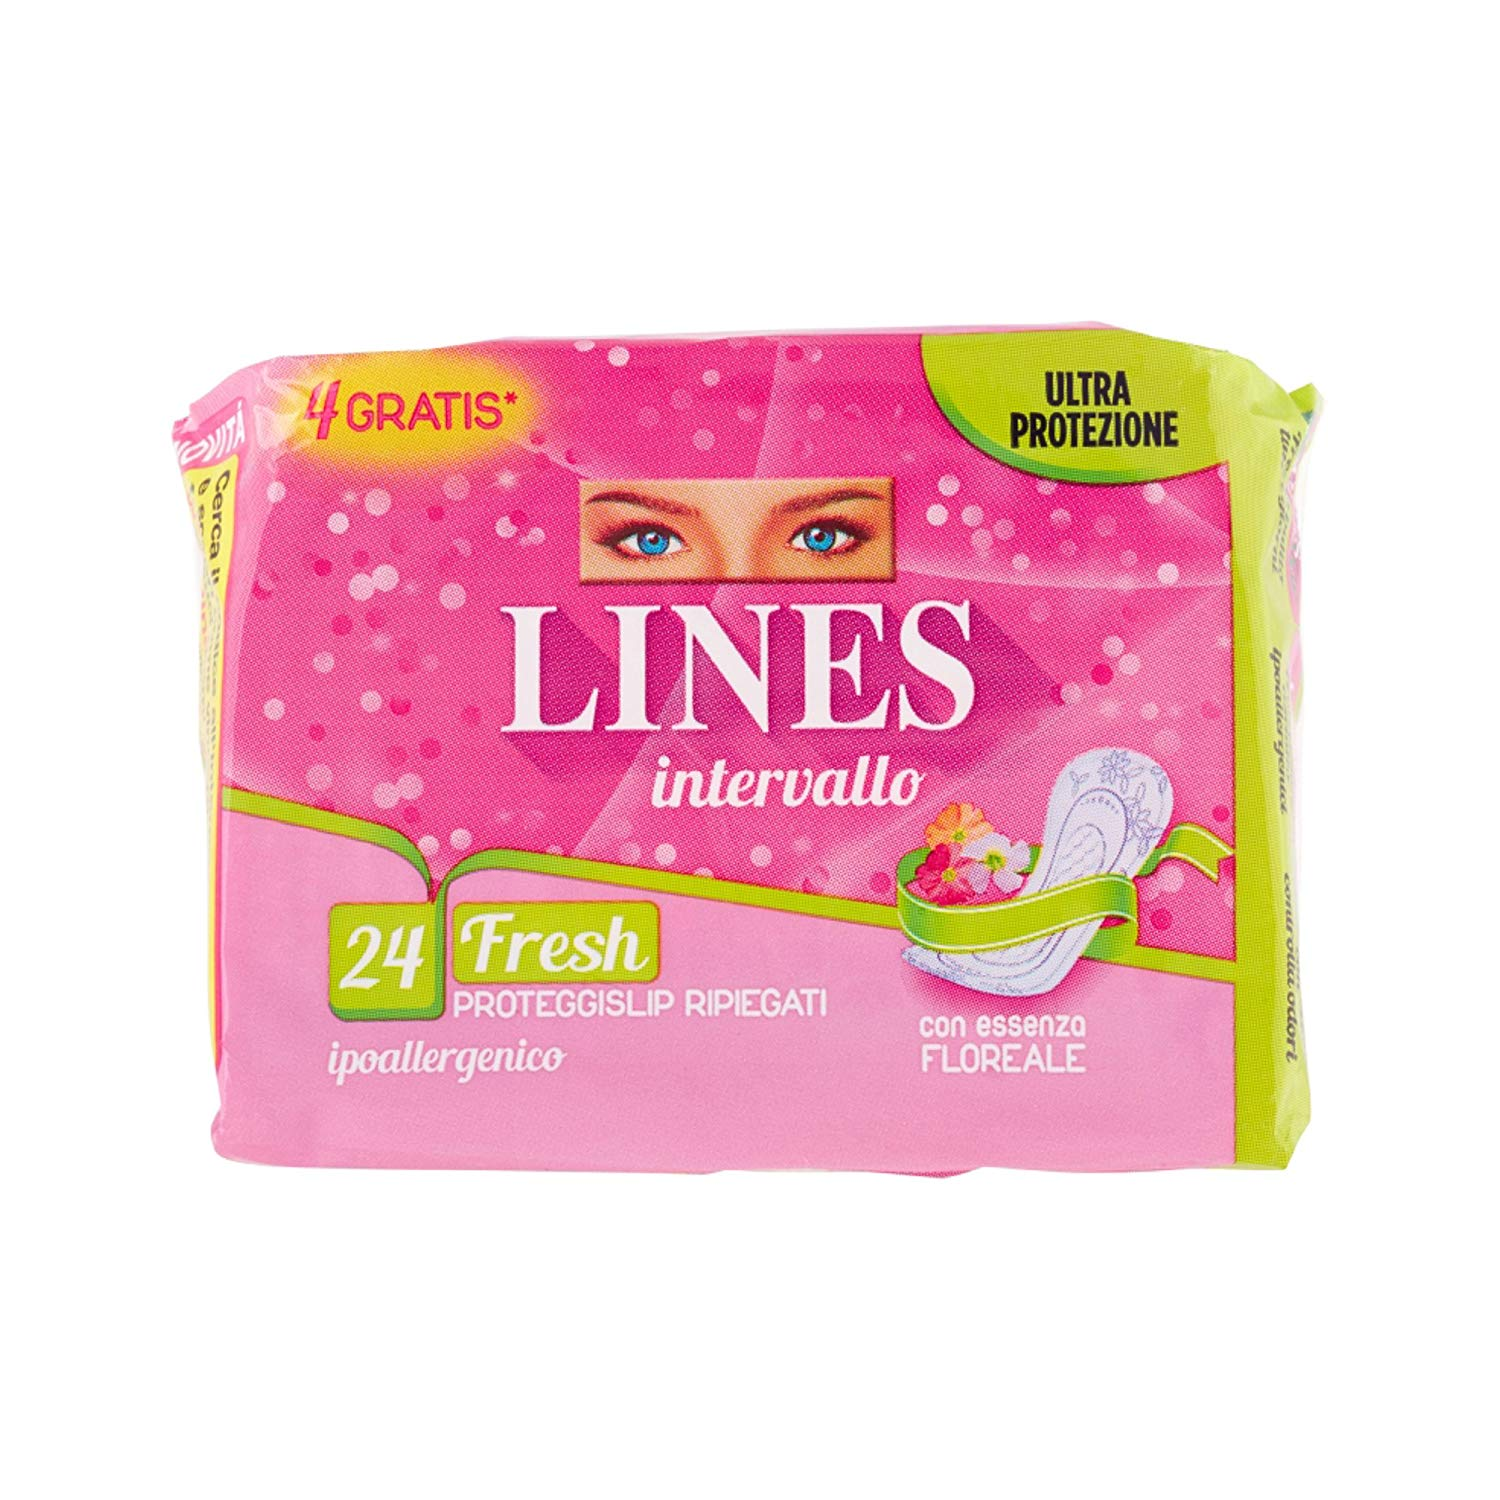 Lines intervallo fresh 24pz